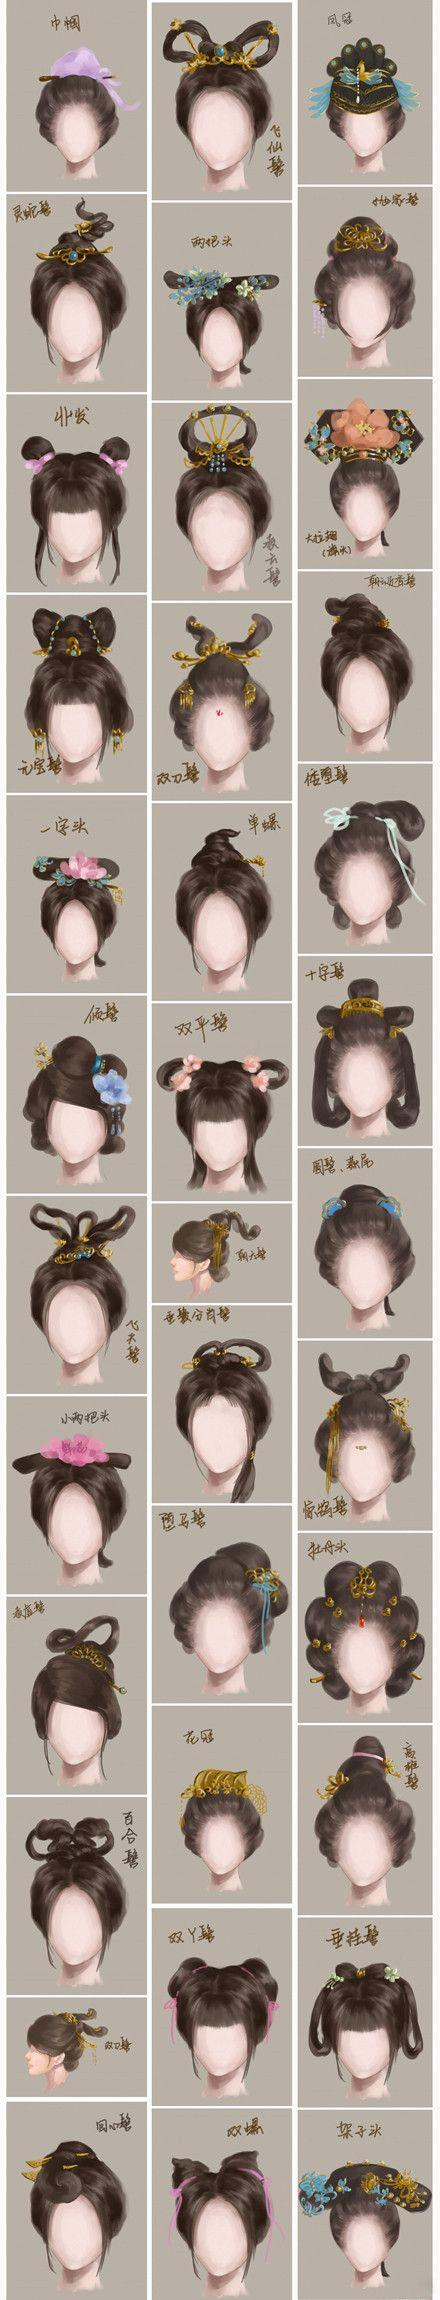 These look like Chinese historical hairstyles, but I could be wrong. (Beauty Women Fantasy)